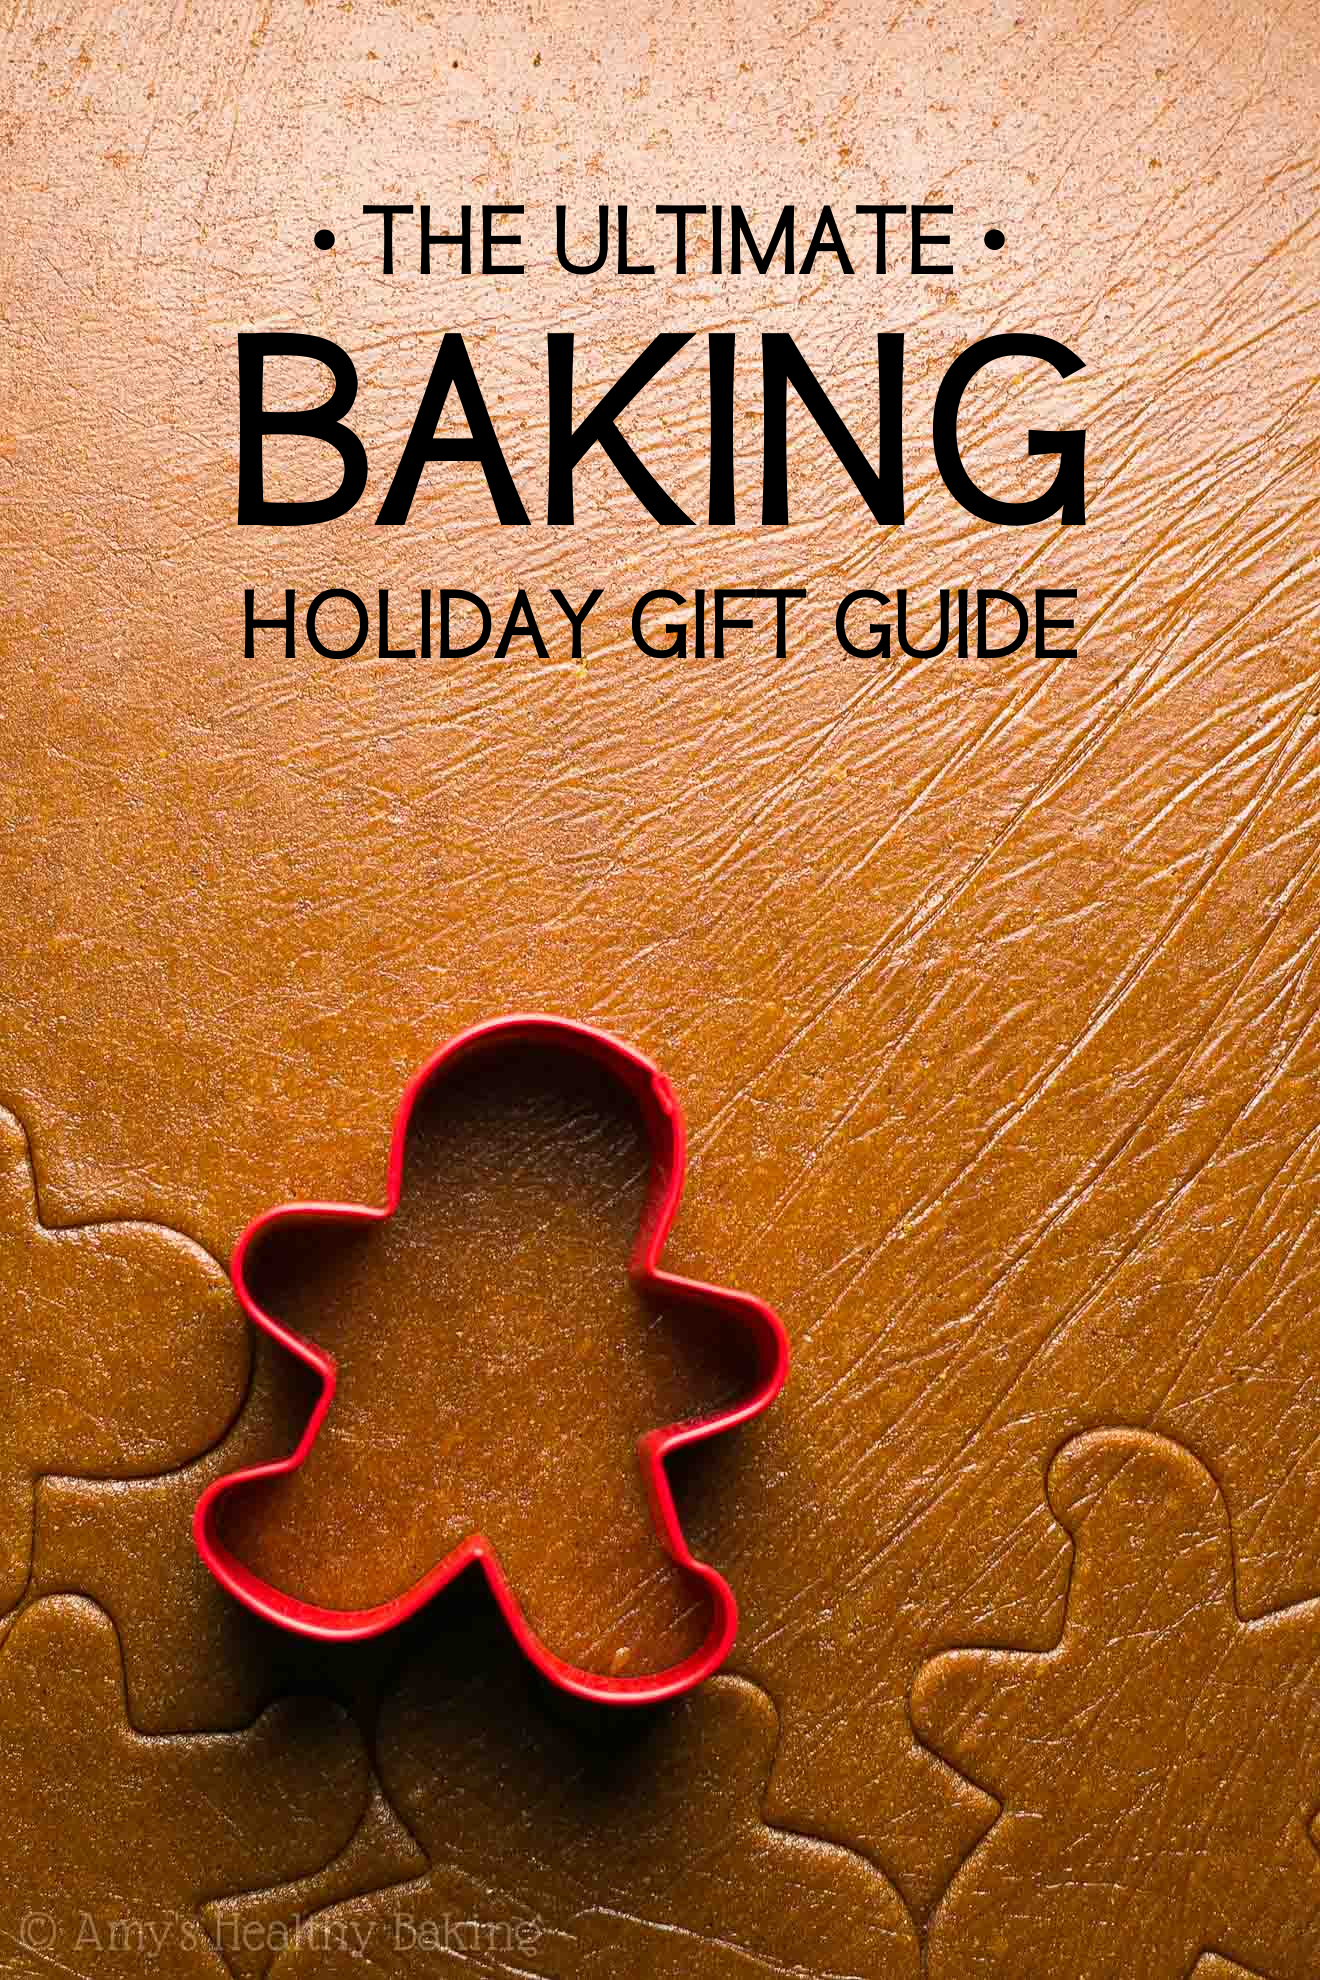 The Ultimate Baking Holiday Gift Gift -- perfect for anyone who loves to bake! Gourmet recipe baskets, must-have tools, cookbooks & more! The BEST one-stop shop!